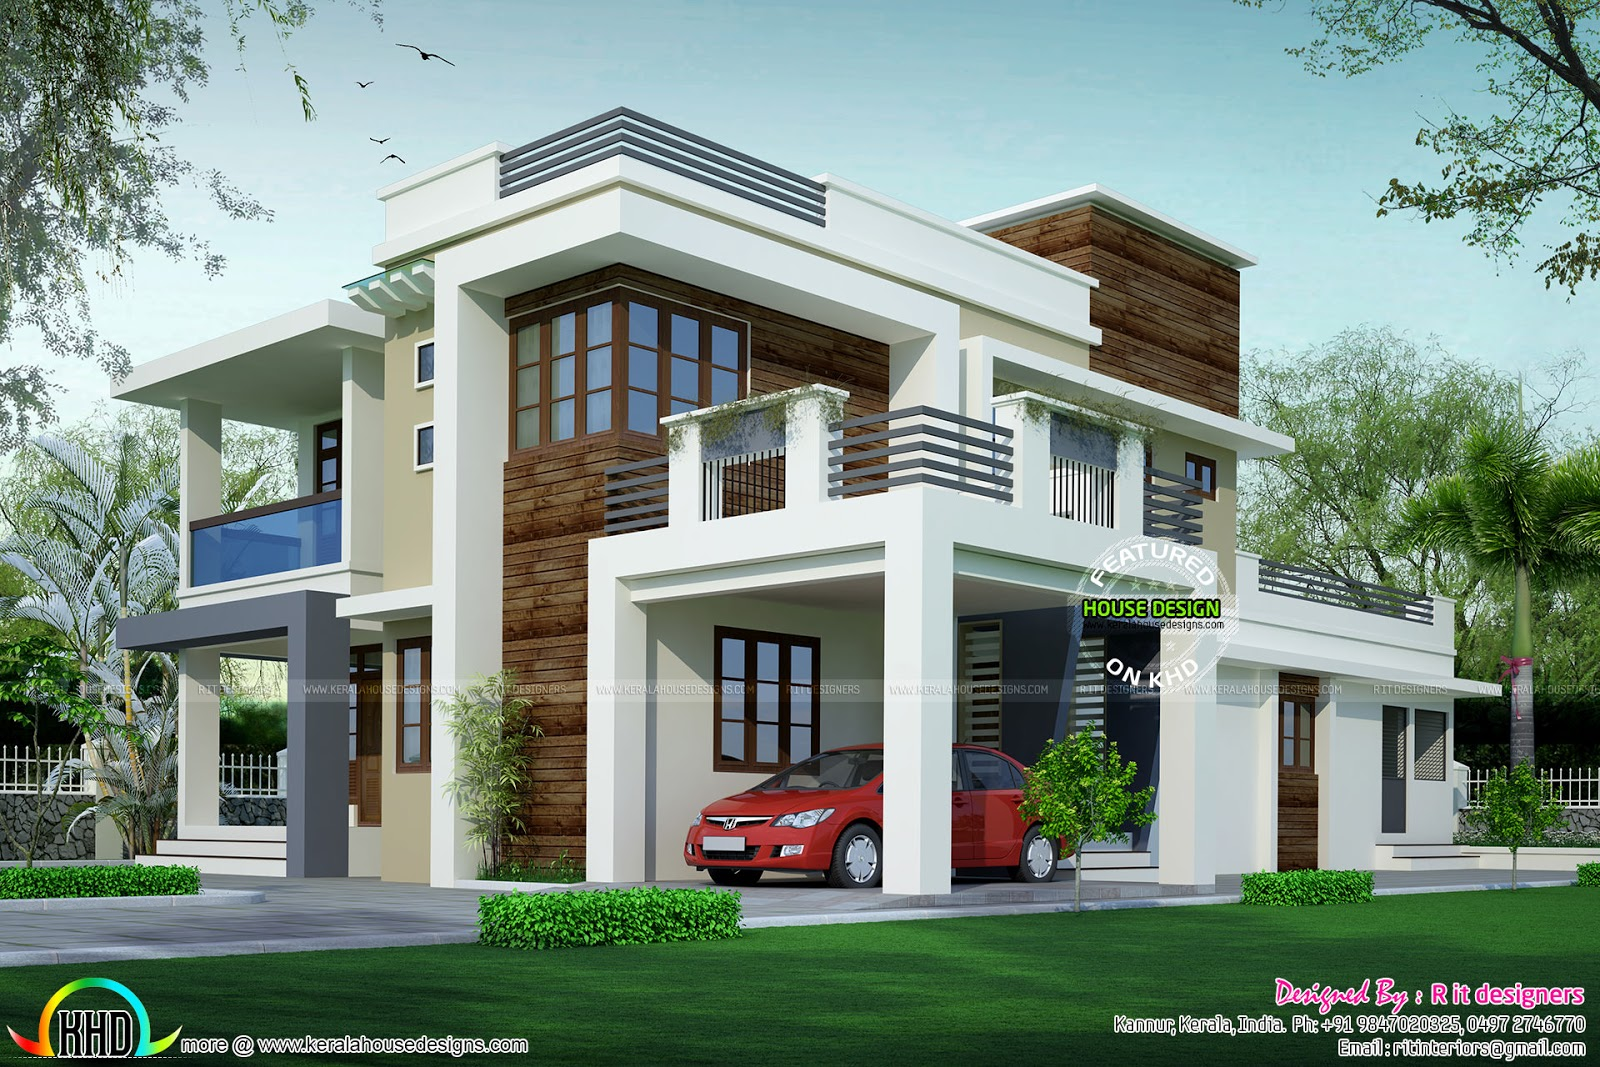 House design contemporary model kerala home design and for Contemporary house designs